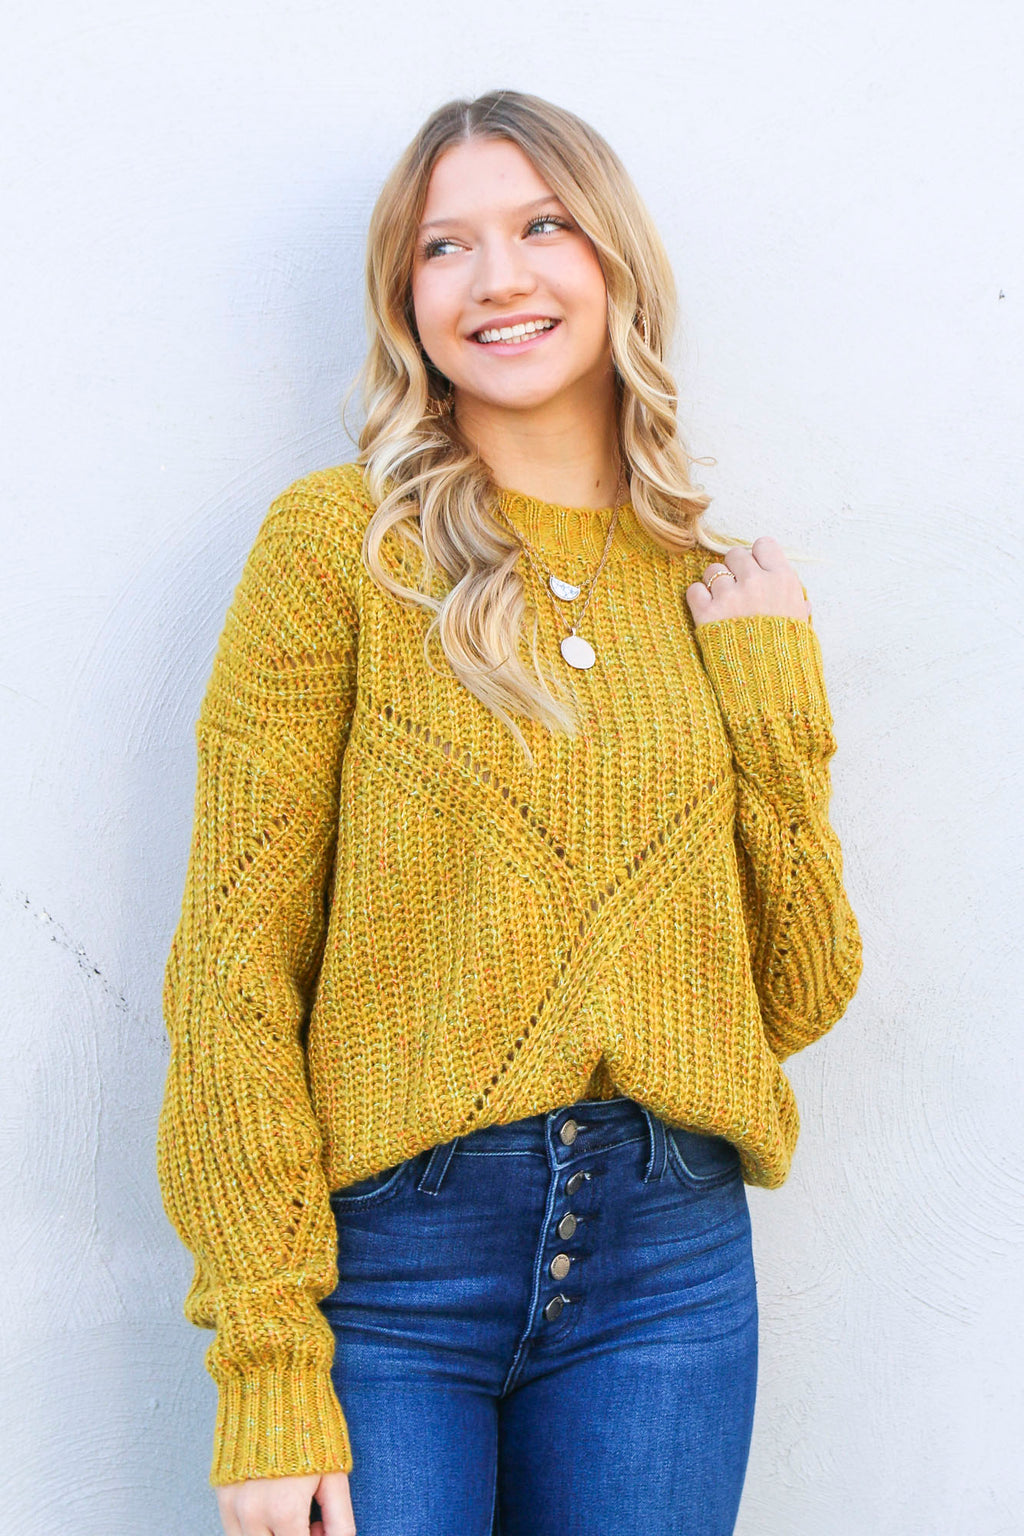 Speckled Poppy Sweater - Mustard